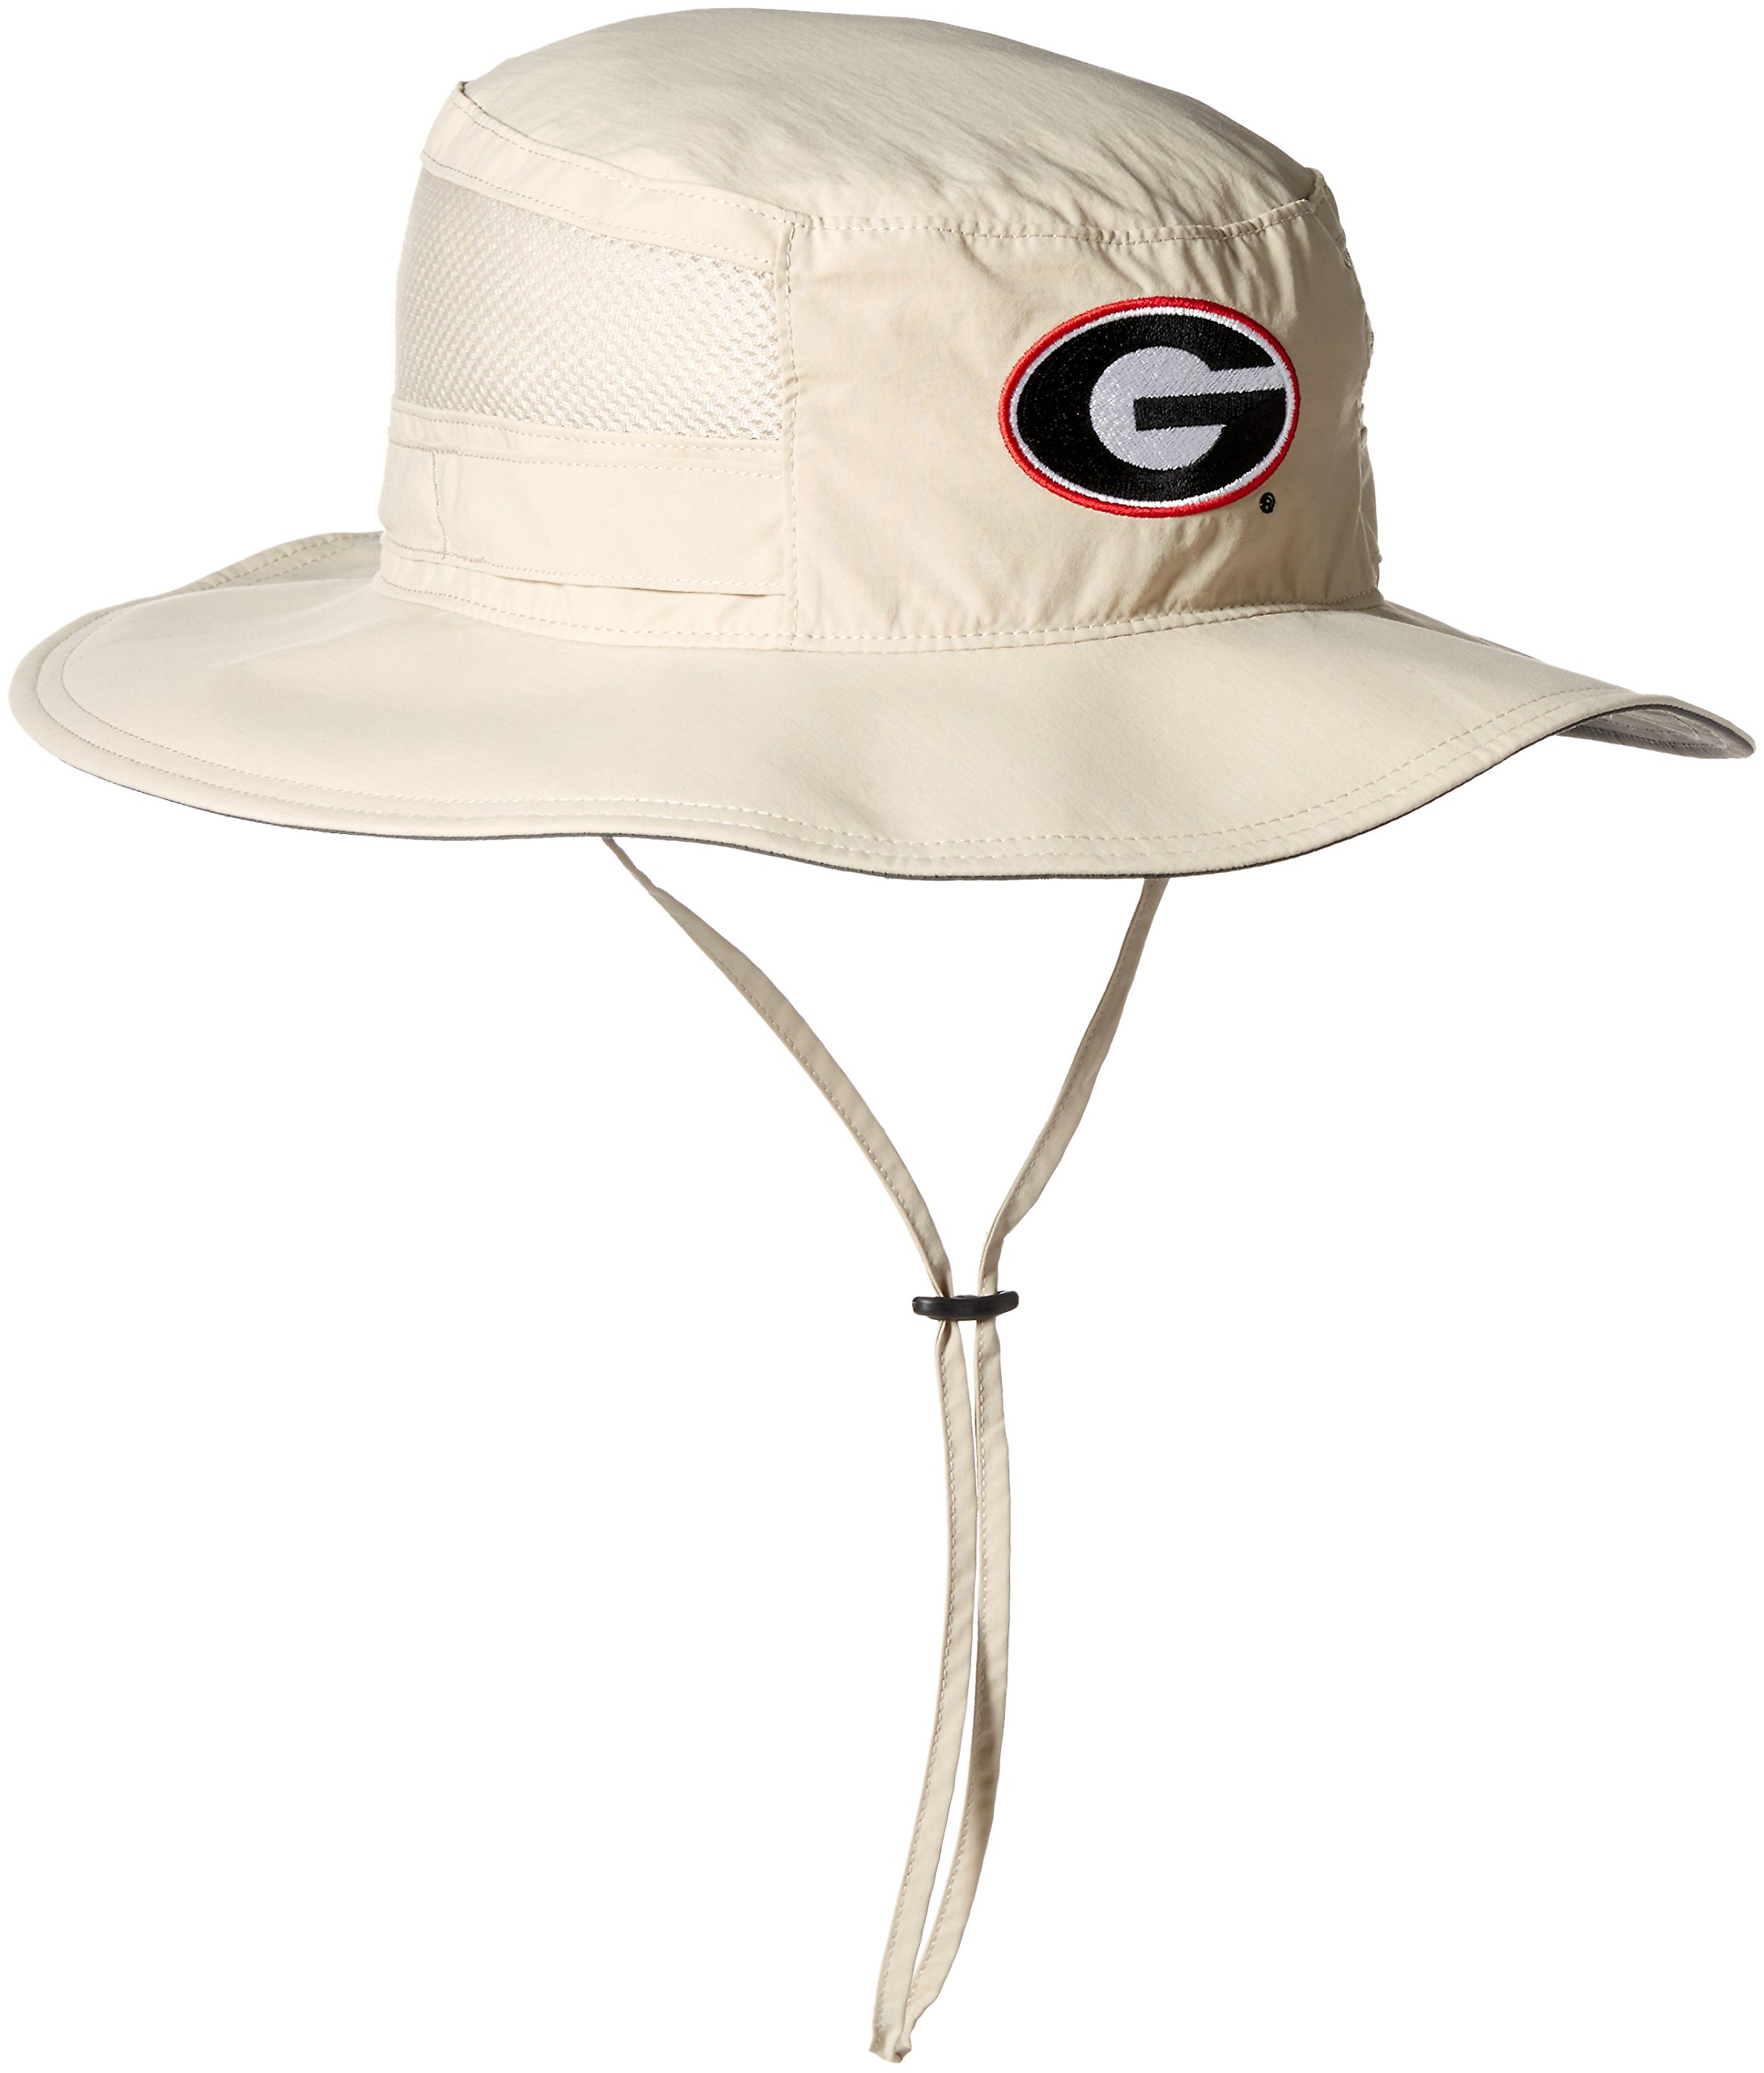 23d18e35338 Galleon - NCAA Georgia Bulldogs Collegiate Bora Bora Booney II Hat ...